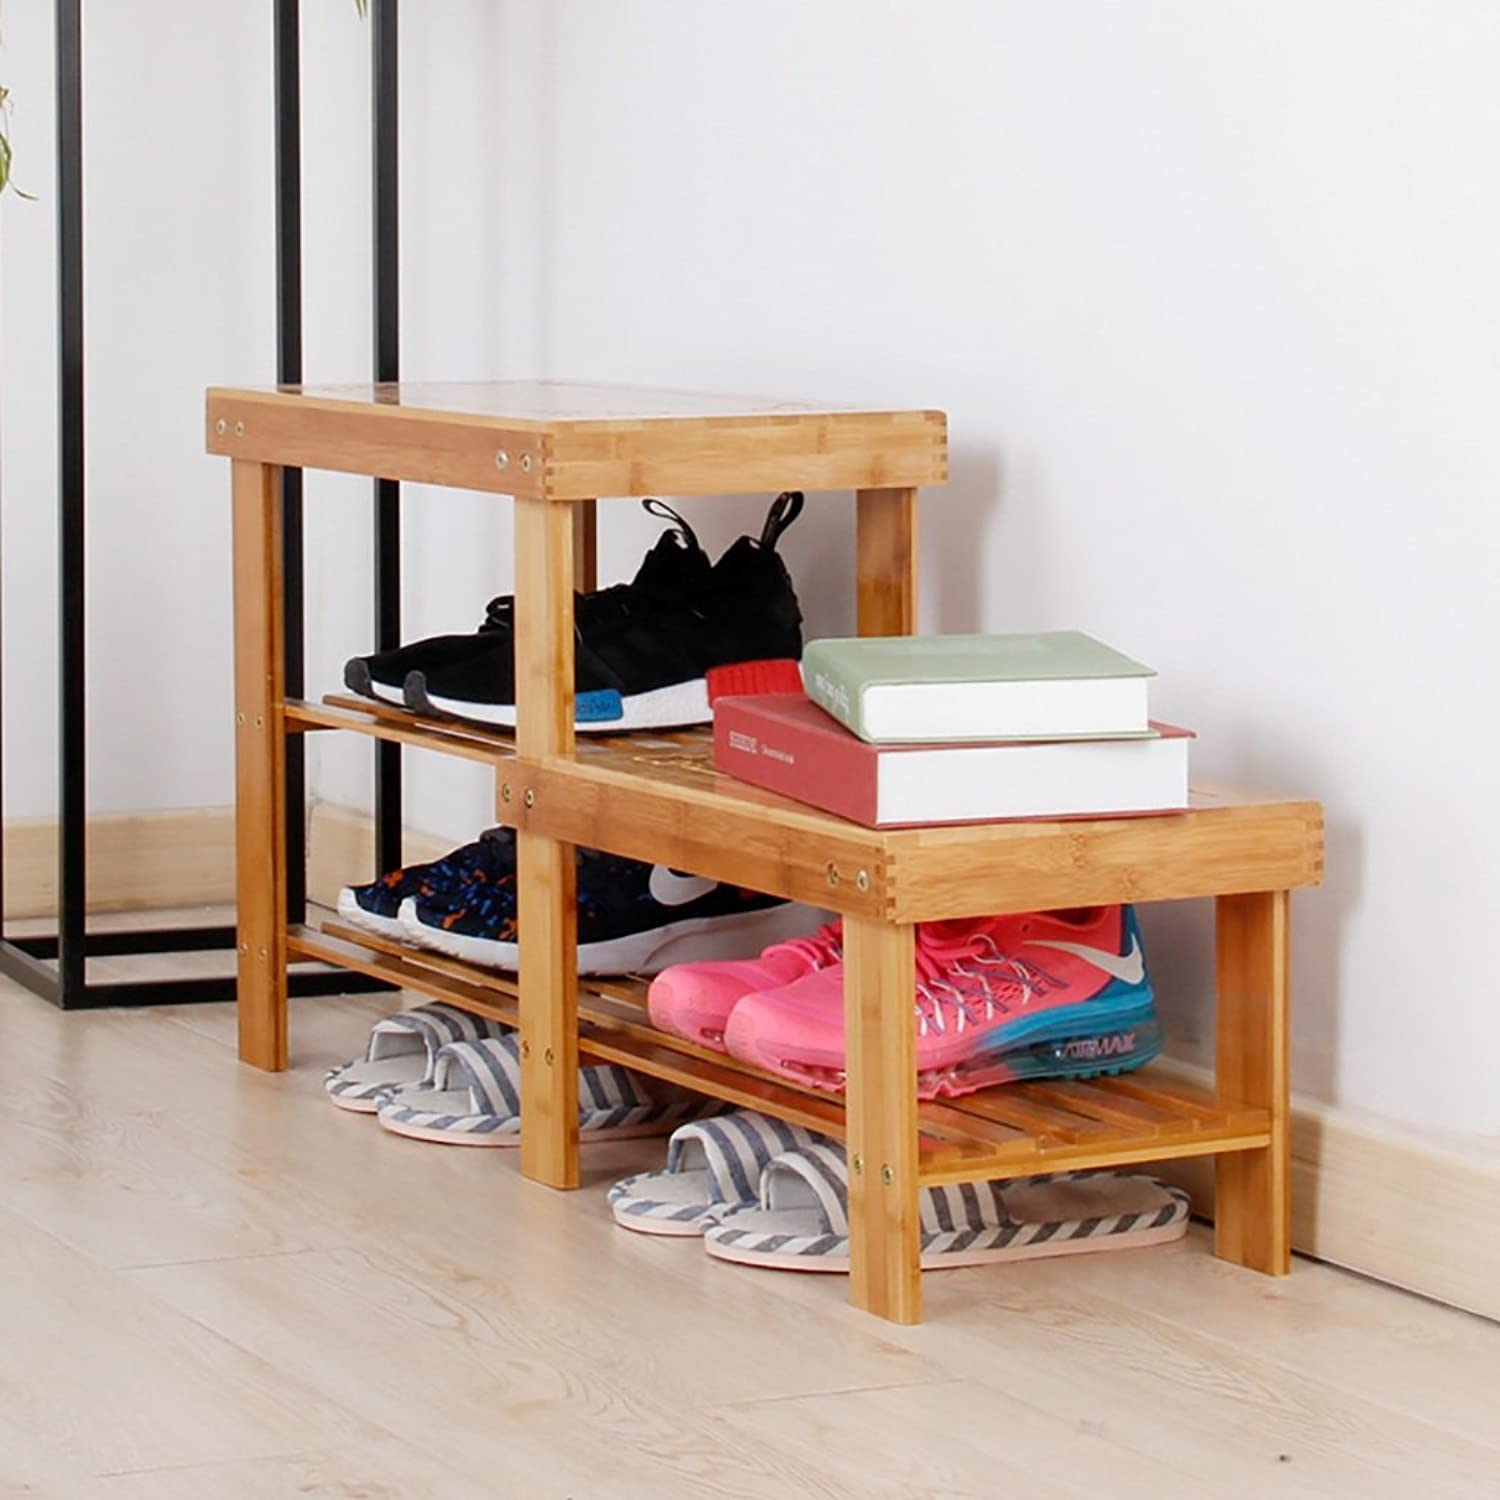 shoes Bench Organizing Rack Bamboo for The Stool Solid Wood high and Low wear shoes Small Stool Simple shoes Cover shoes Rack Multi-Storey Storage Footstool